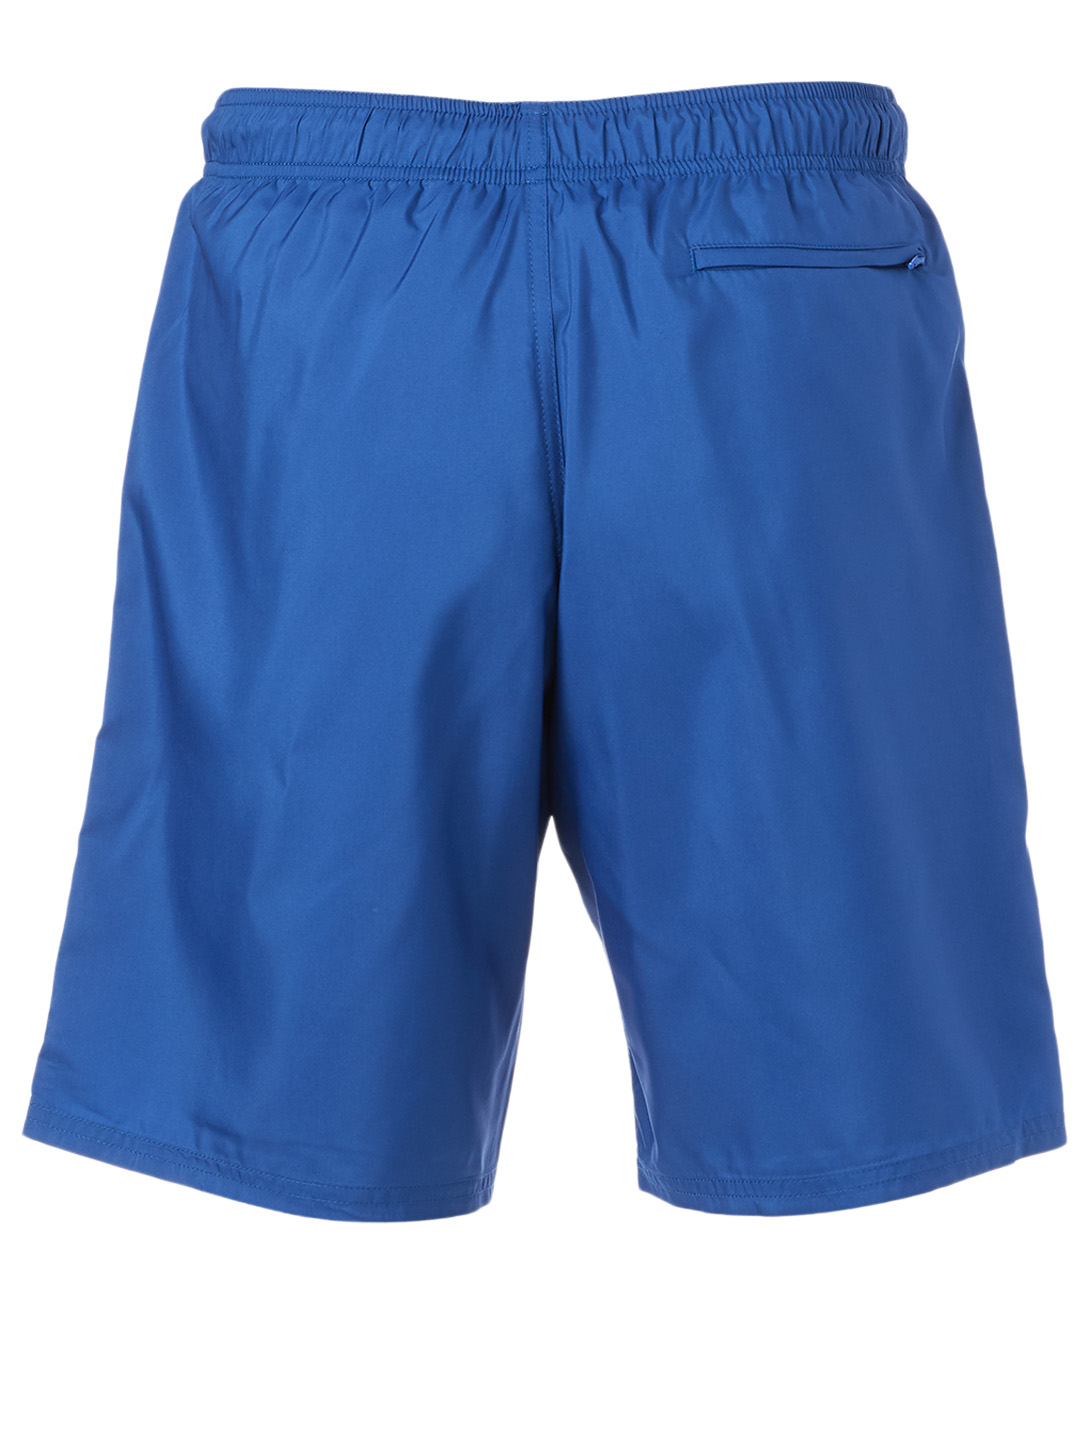 GIVENCHY Long Swim Shorts Men's Blue